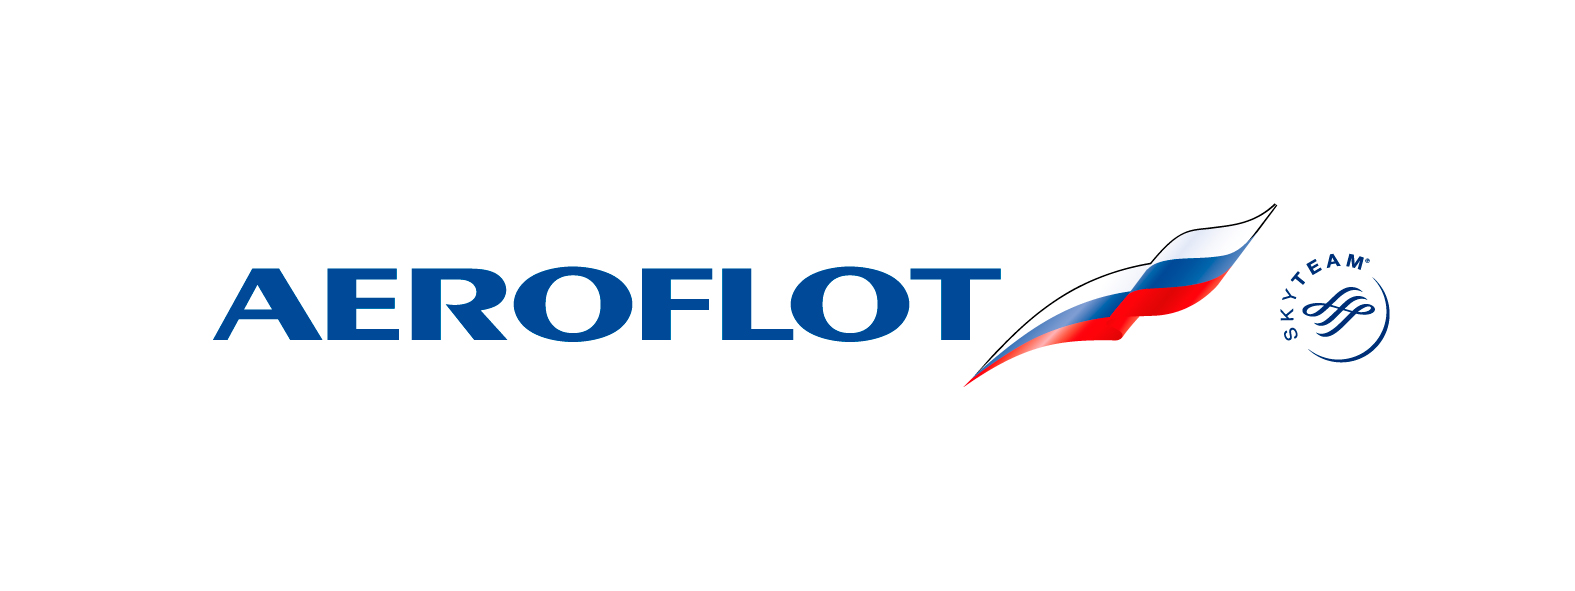 Aeroflot Airline Reviews And Airline Comparison Minube Net